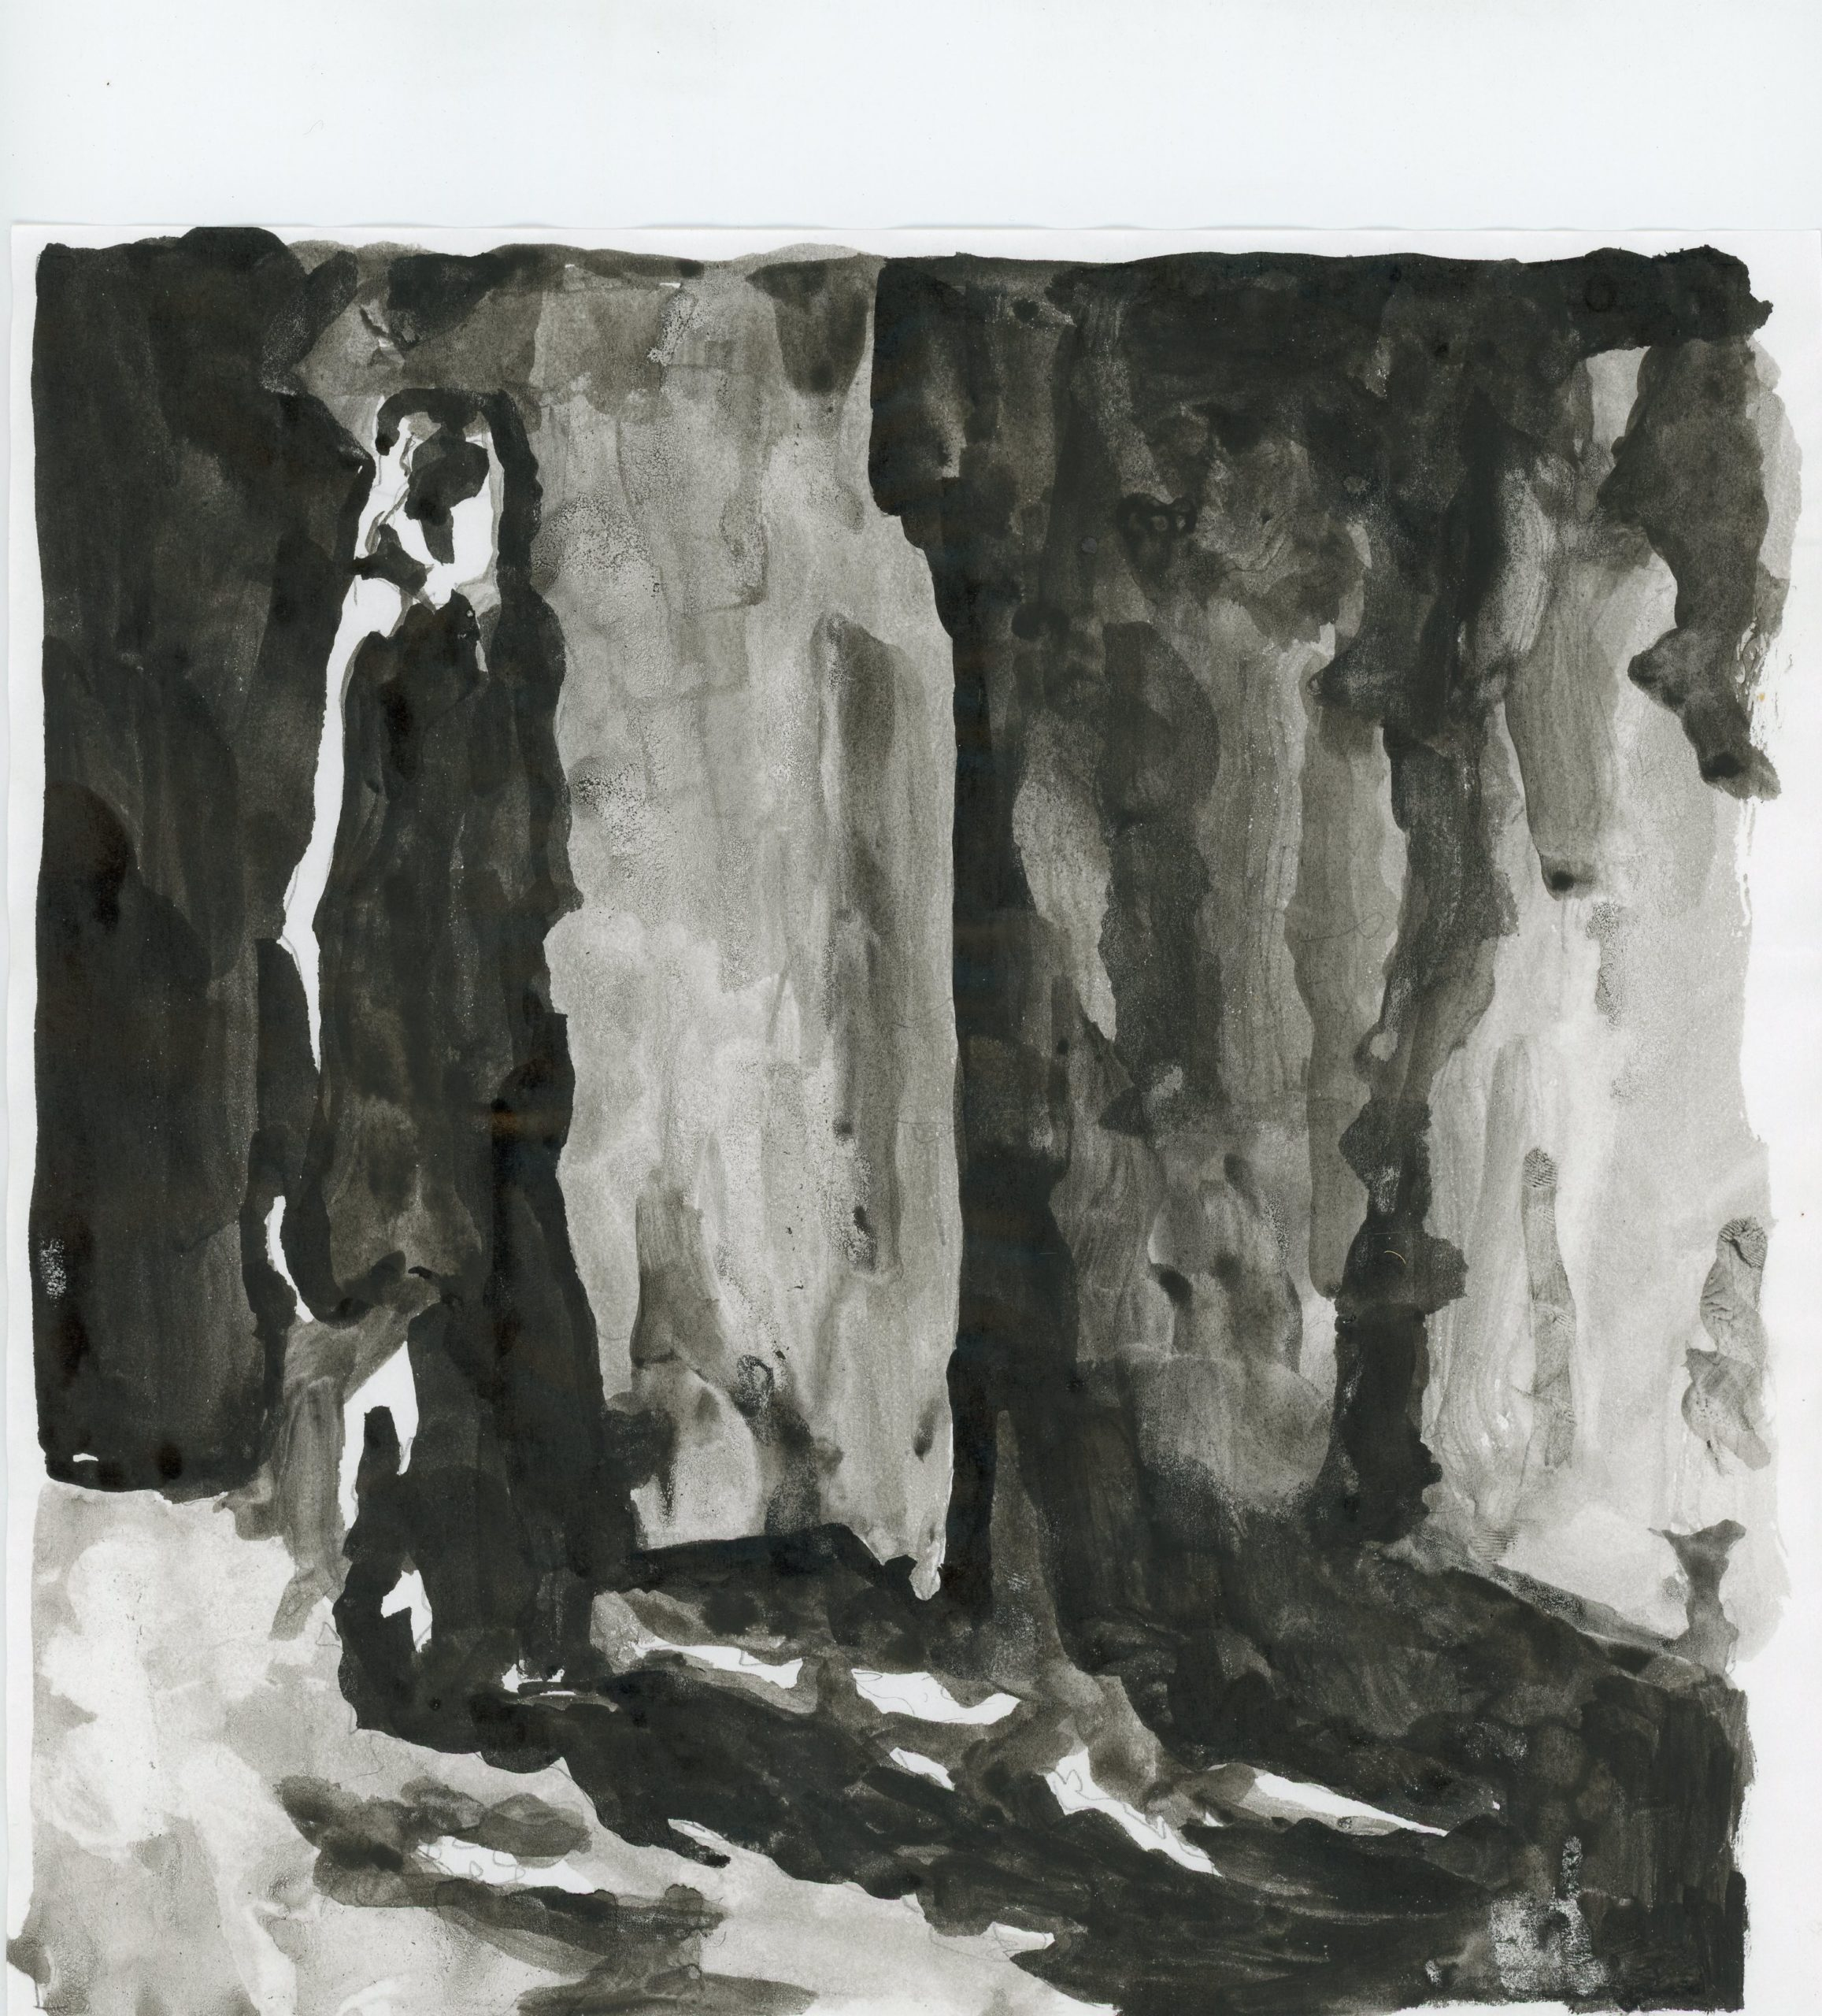 Anna Ridler, Fall of the House of Usher II, 1_7530, Tinte auf Papier, 21 x 21 cm, 2017